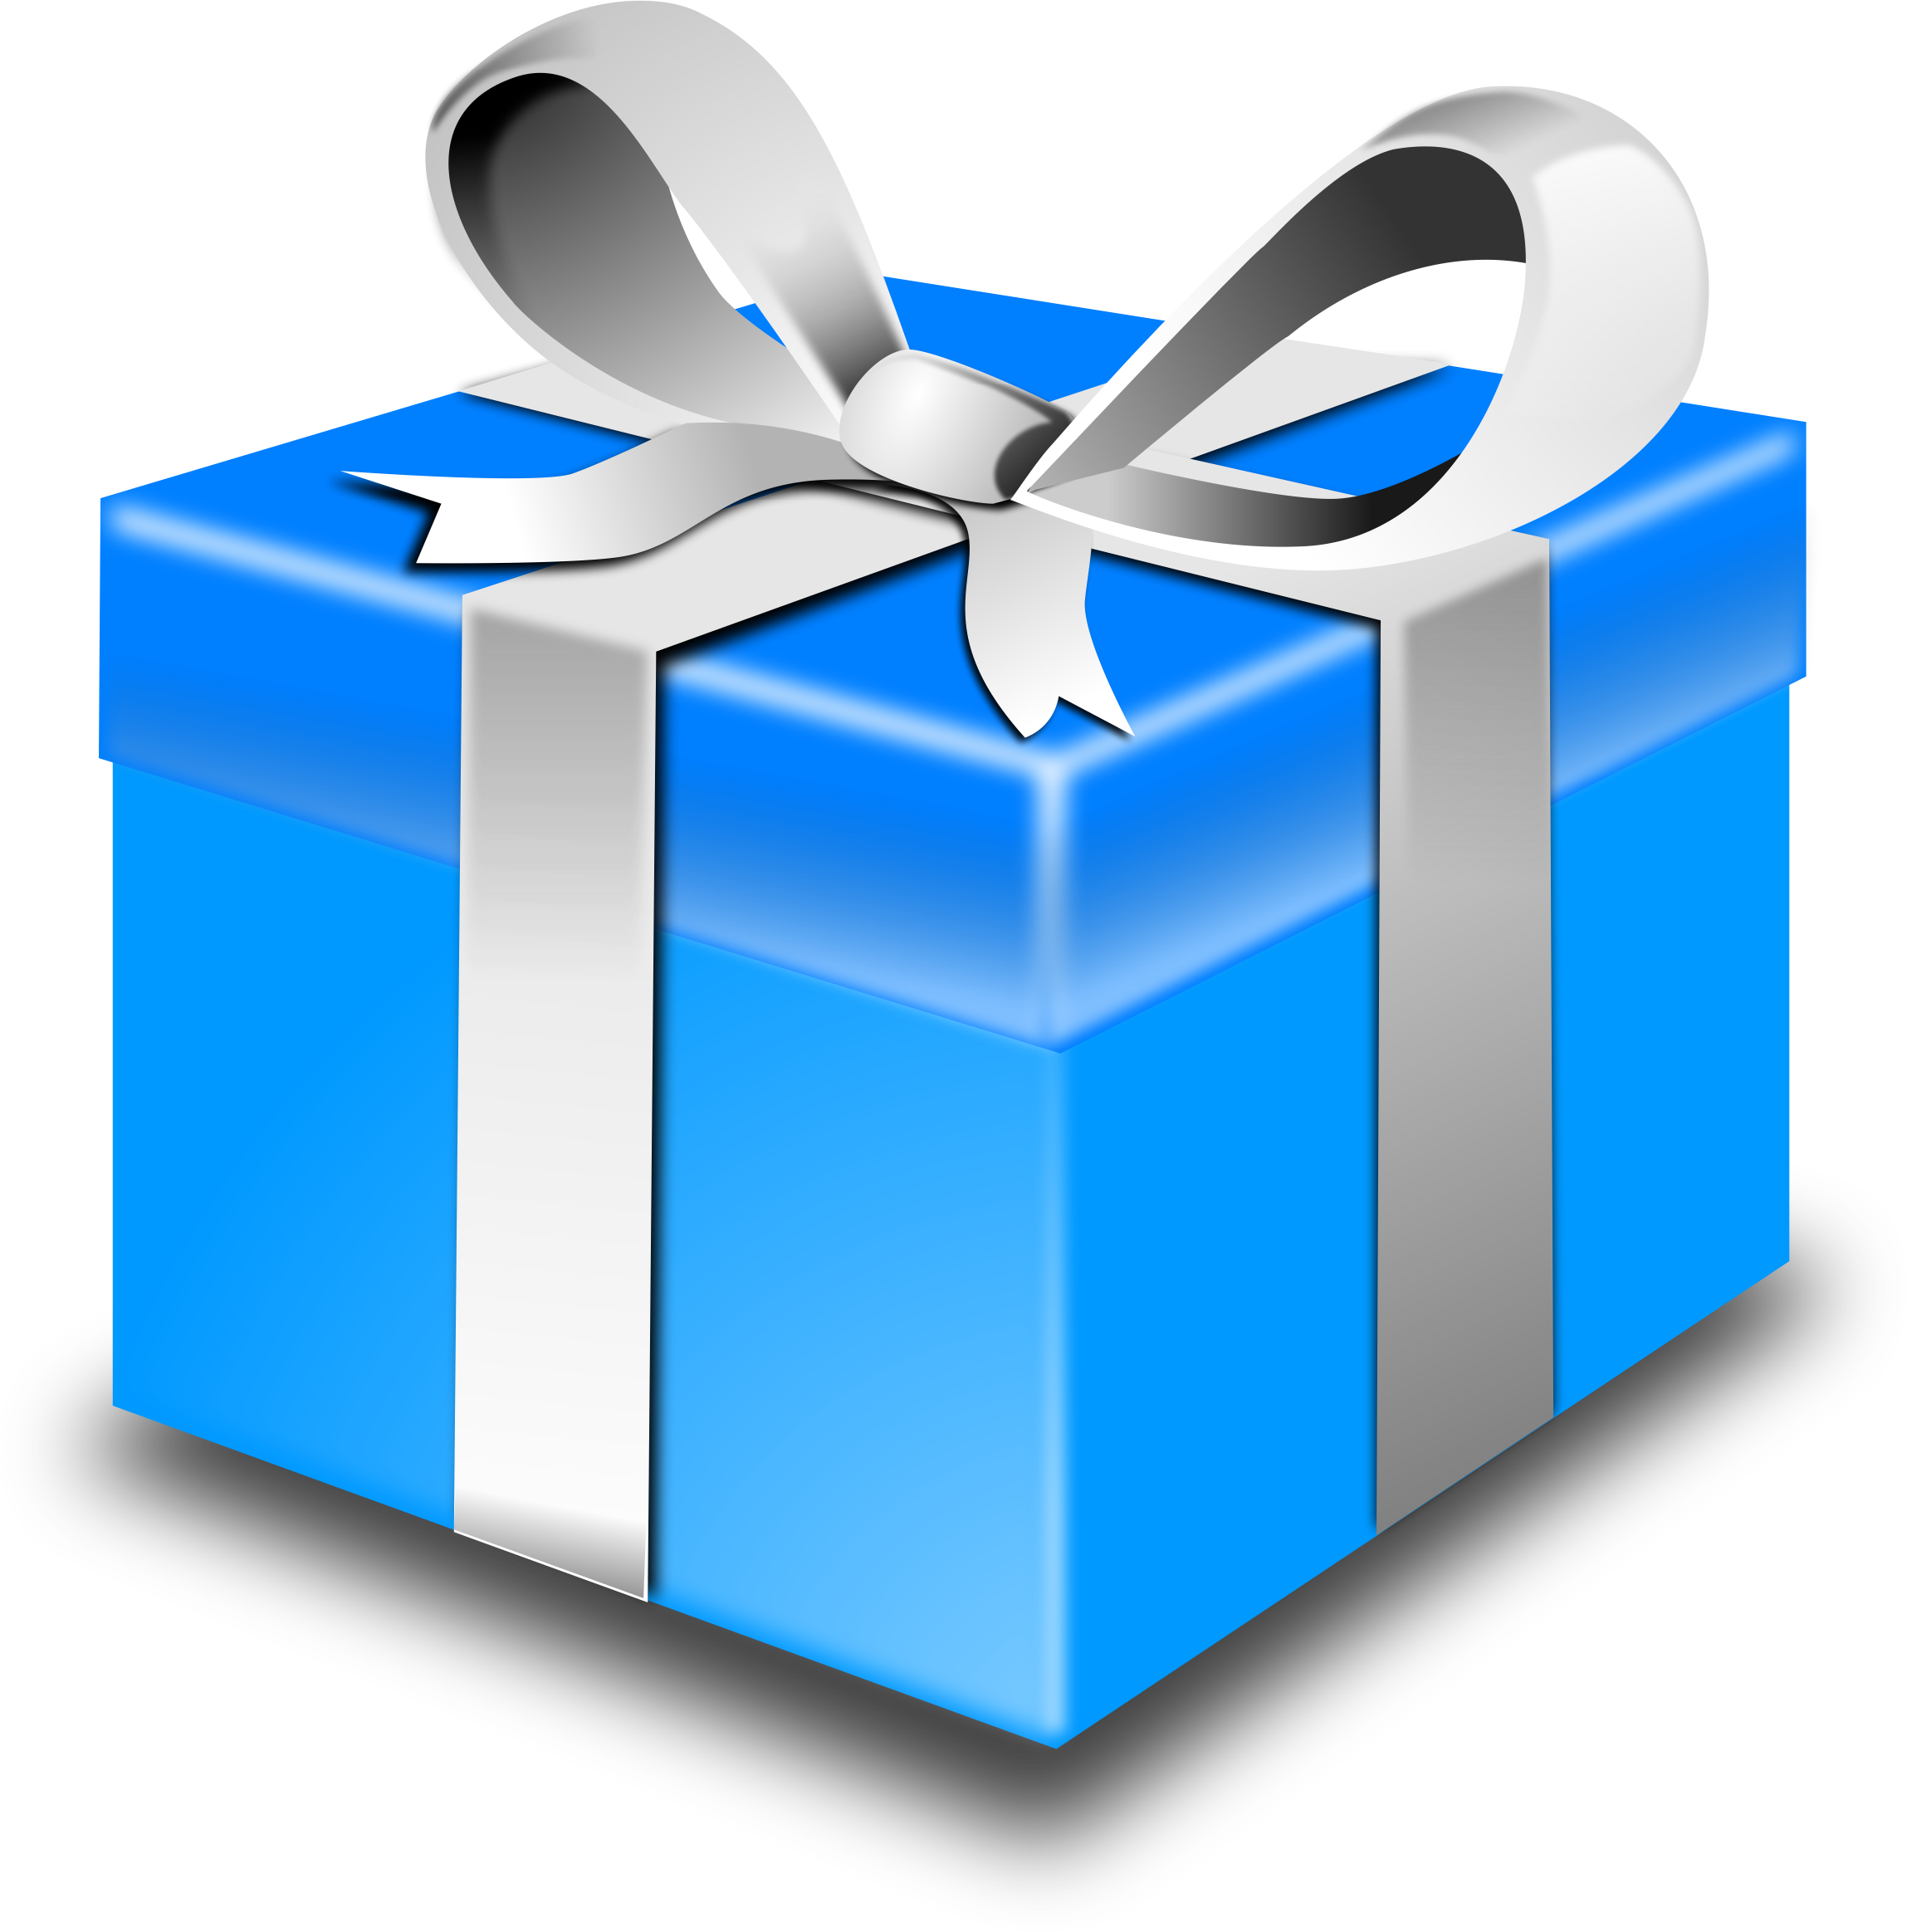 2297x2327 Image For Free Blue Present Box High Resolution Clip Art